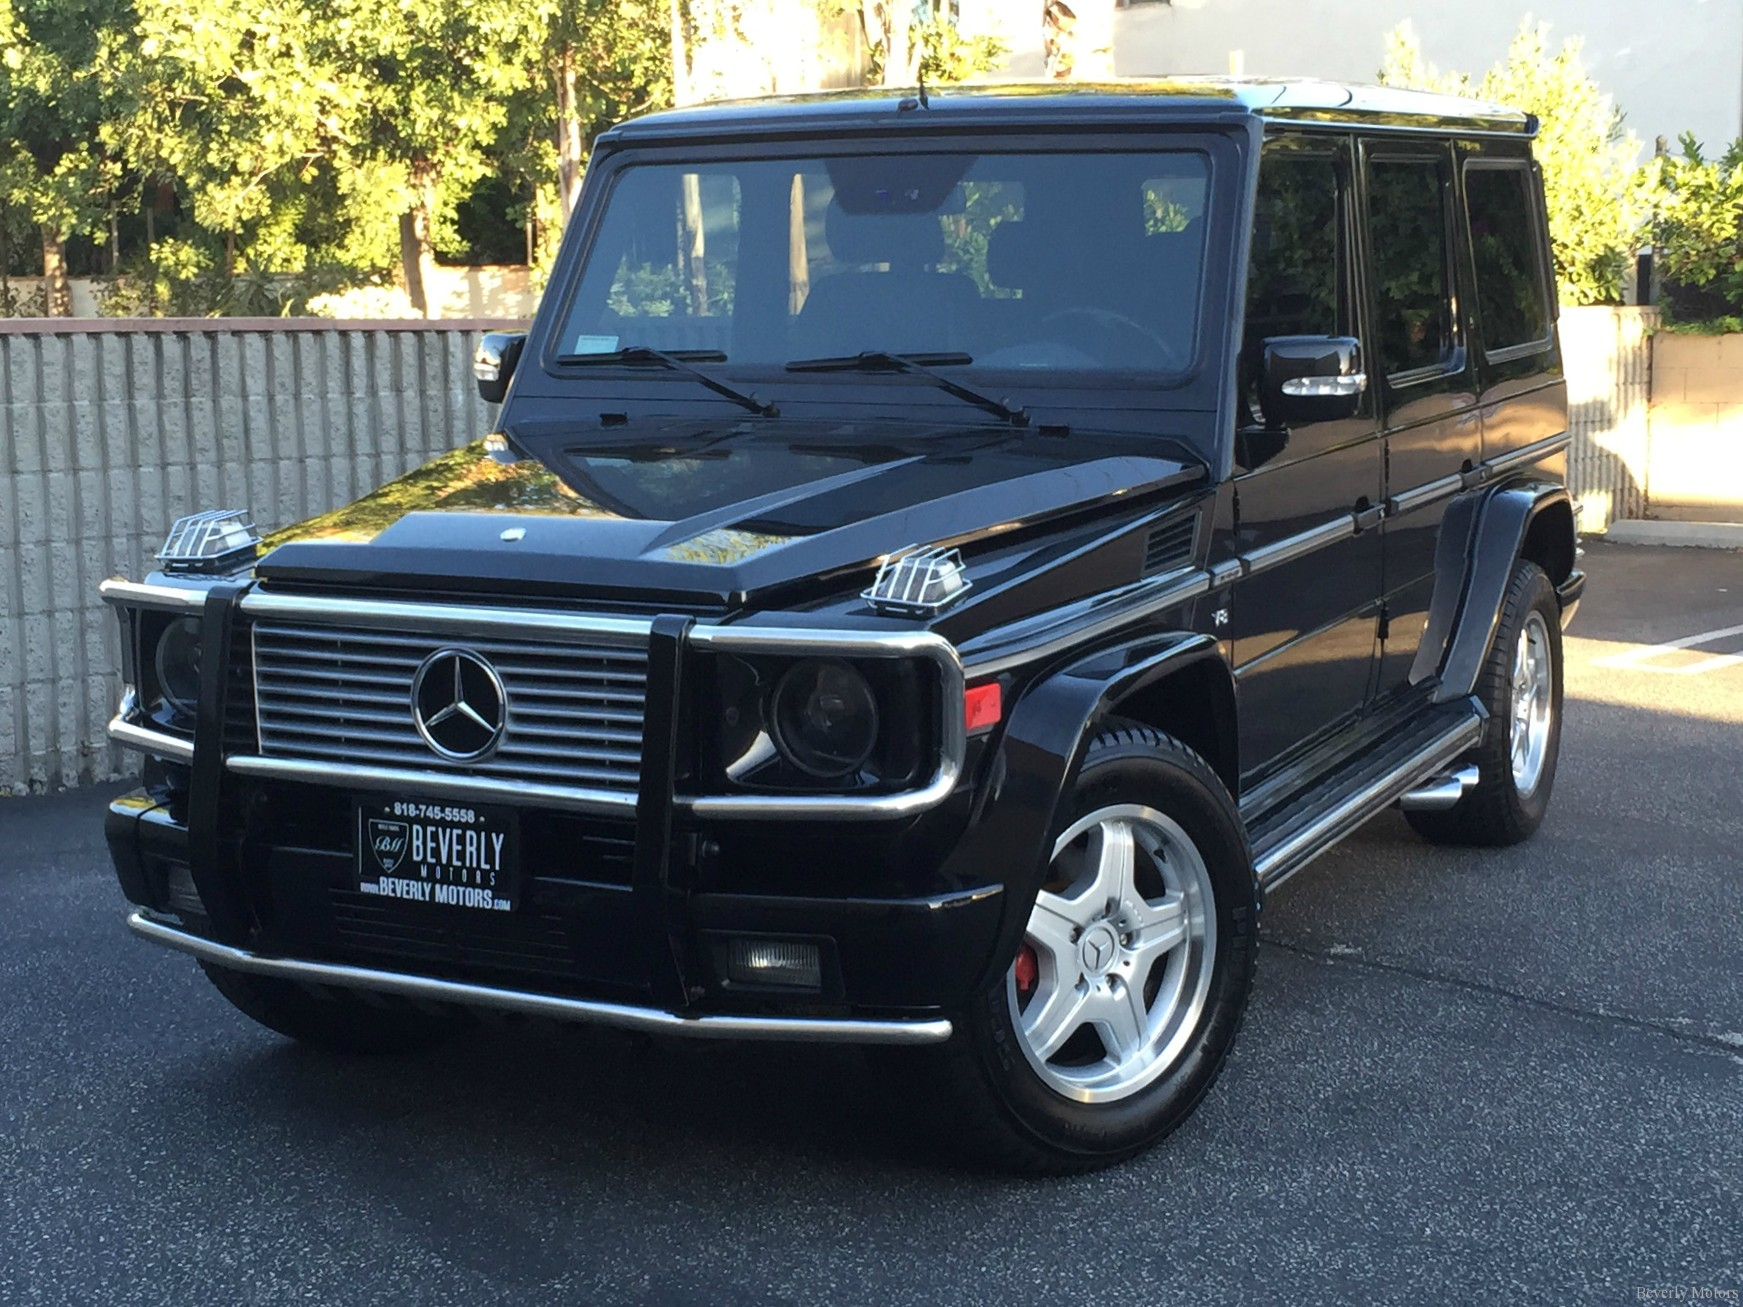 Sound brabus 700 g63 amg 6x6 brabus 850 60 biturbo autos for Mercedes benz g wagon 6x6 for sale